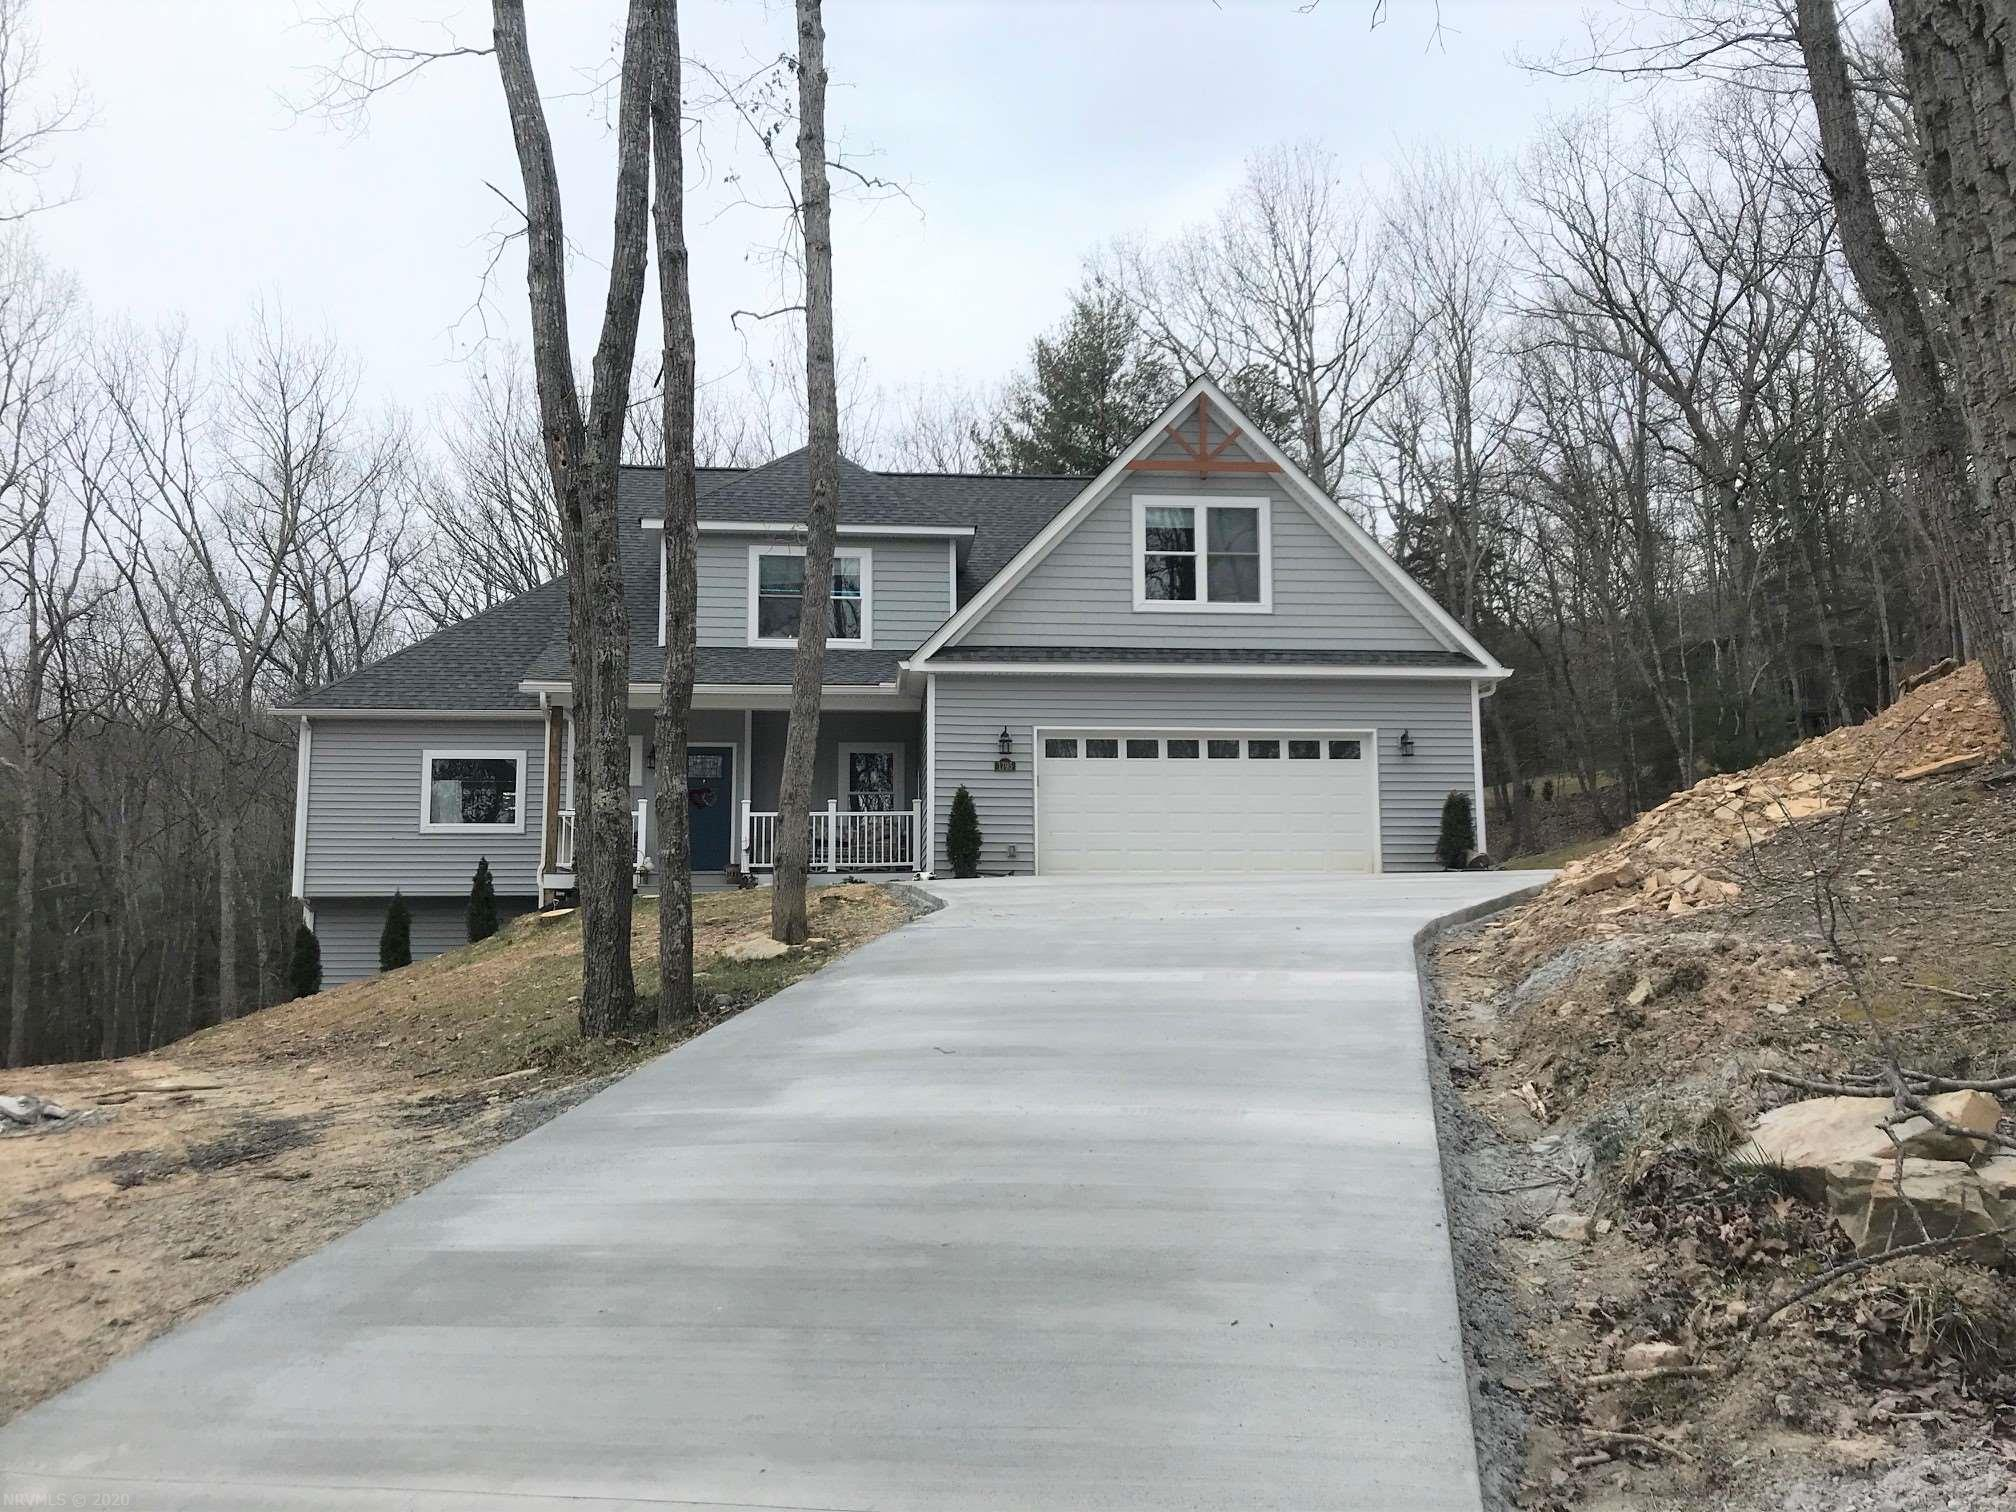 Built in 2019, this contemporary 2 story home is sited on a 3.09 wooded lot in a Blacksburg community just outside the town limits.  The main level is enhanced with flowing hardwood floors,  a family room with vaulted ceiling and gas log fireplace with a vintage mantle.  An open living room, dining area and kitchen concept.  The formal dining room with unique french doors, is presently being used as an office.  Stainless steel appliances and work island in the kitchen.  Off the kitchen you access the laundry room, 1/2 bath & garage. A grand master suite offering a private deck, a walk in closet, & private bath accented by an antique tub, double sinks & ceramic tiled spacious step in shower. Venture upstairs to 3 bedrooms one with private bath & a full hall bath. The full basement basement has a family room w/gas log fireplace, full bath and 2 unfinished rooms for storage or set up your own exercise area. You are just minutes from downtown Blacksburg & VA Tech.